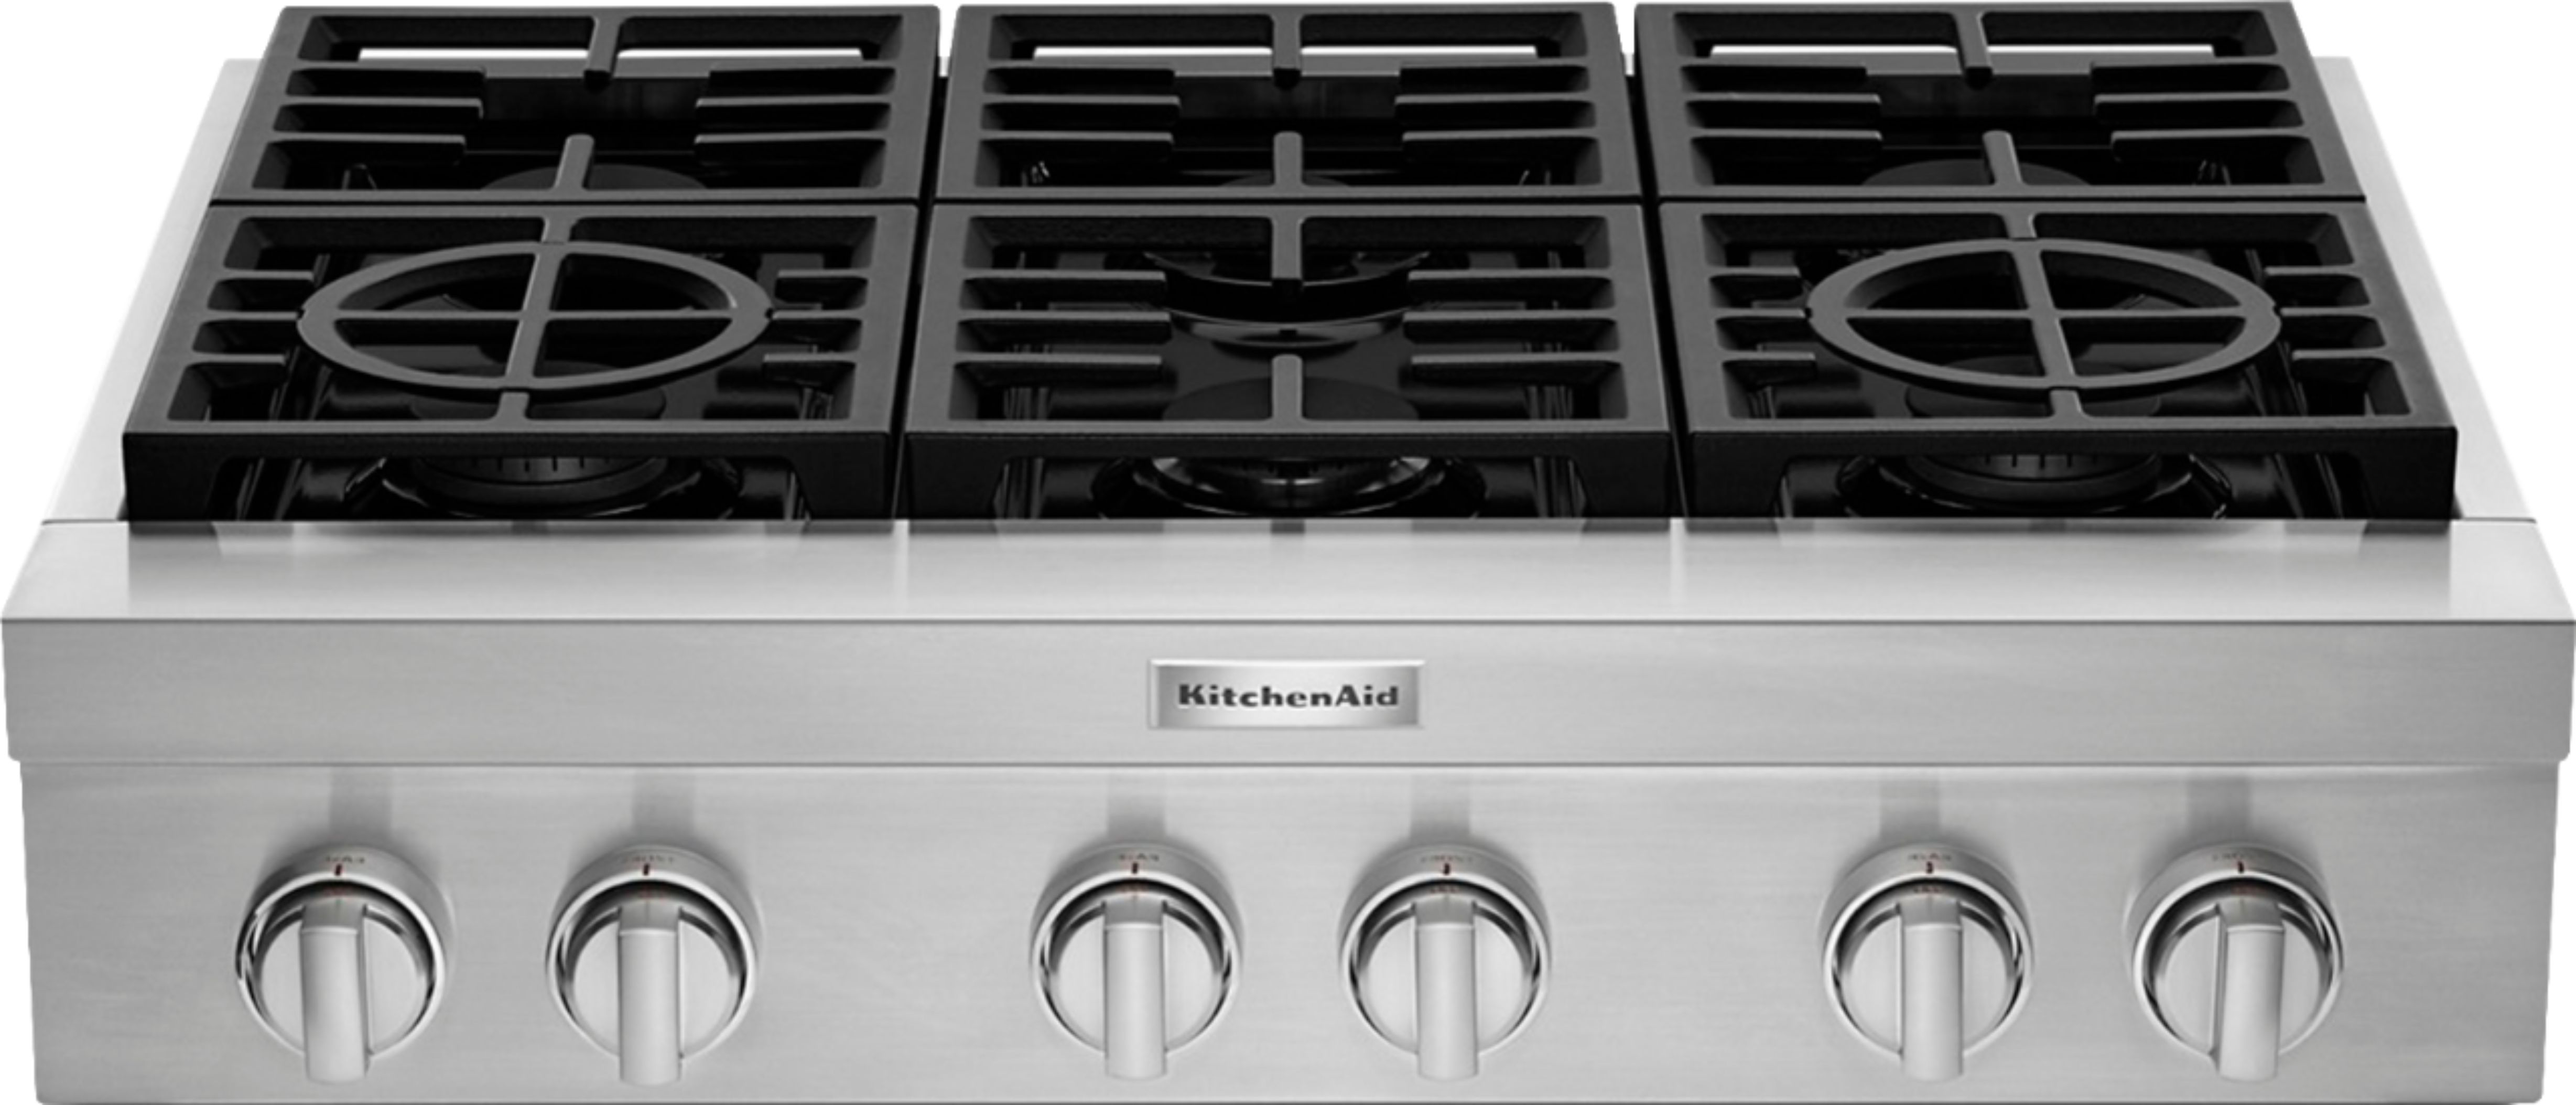 Kitchenaid Commercial Style 36 Built In Gas Cooktop Stainless Steel Kcgc506jss Best Buy In 2020 Gas Cooktop Cooktop Kitchen Aid